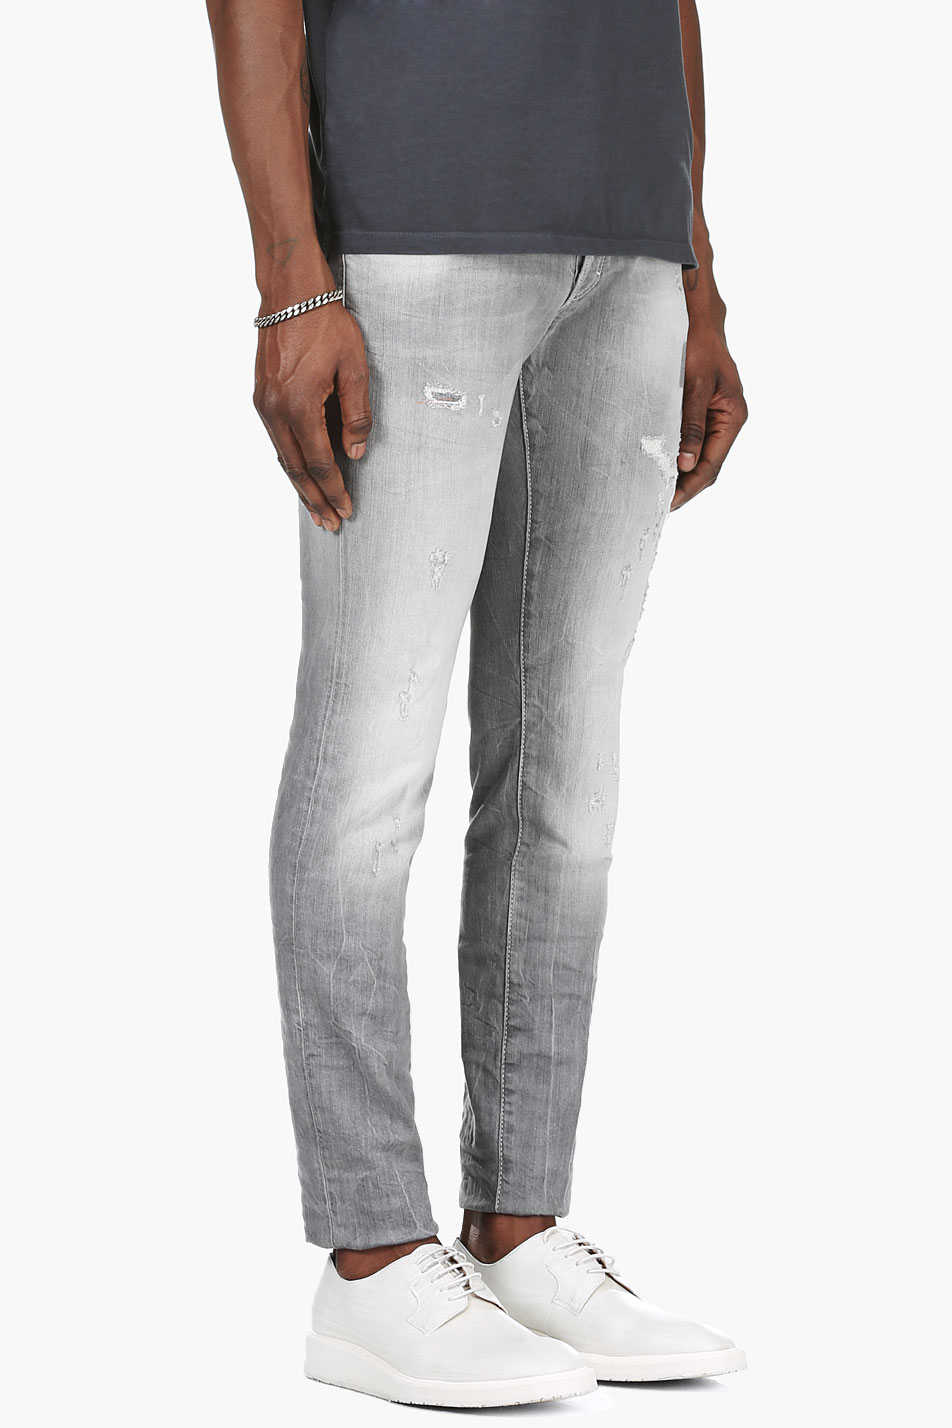 Dsquared² Light Grey Distressed Jeans in Gray for Men | Lyst